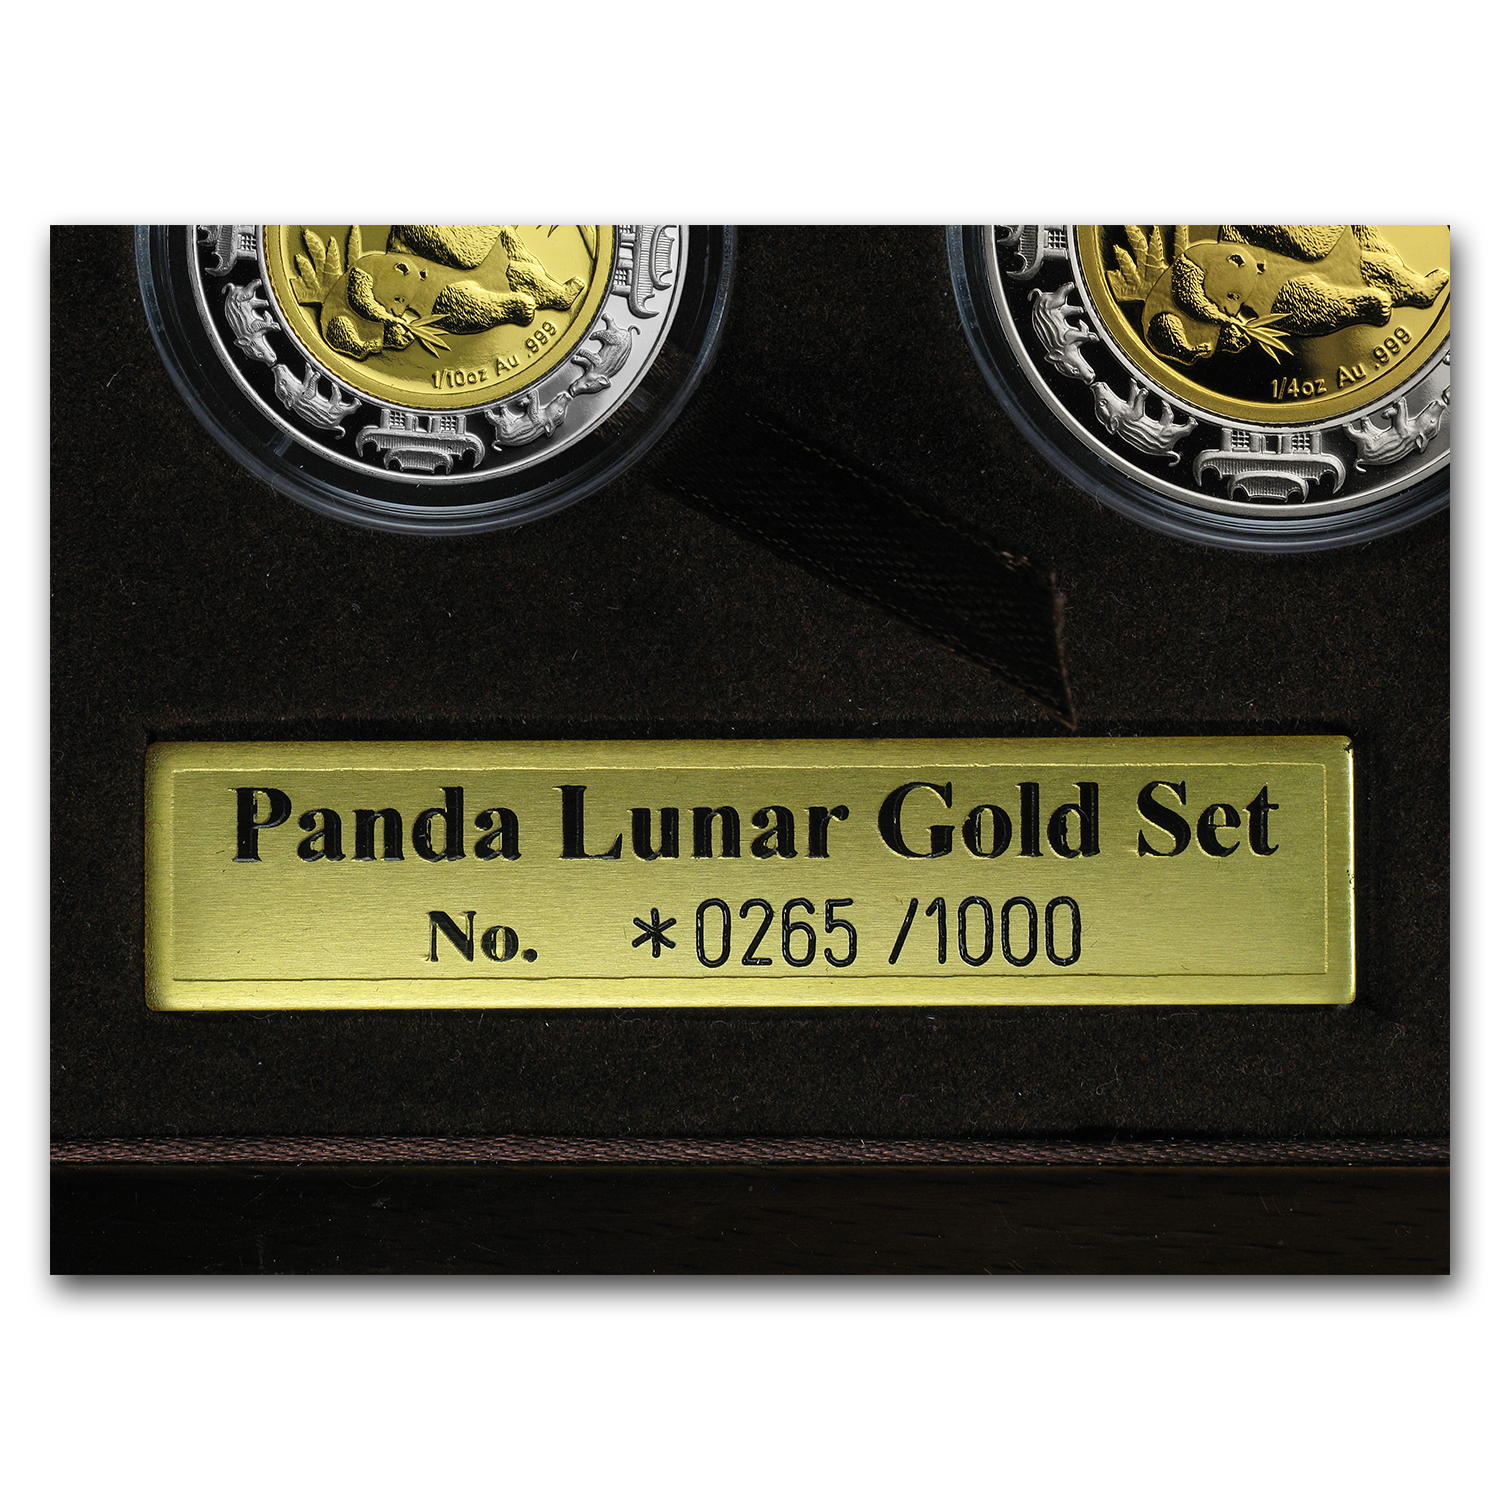 2007 China 4-Coin Gold/Silver Panda/Pig Lunar Prestige Prf Set